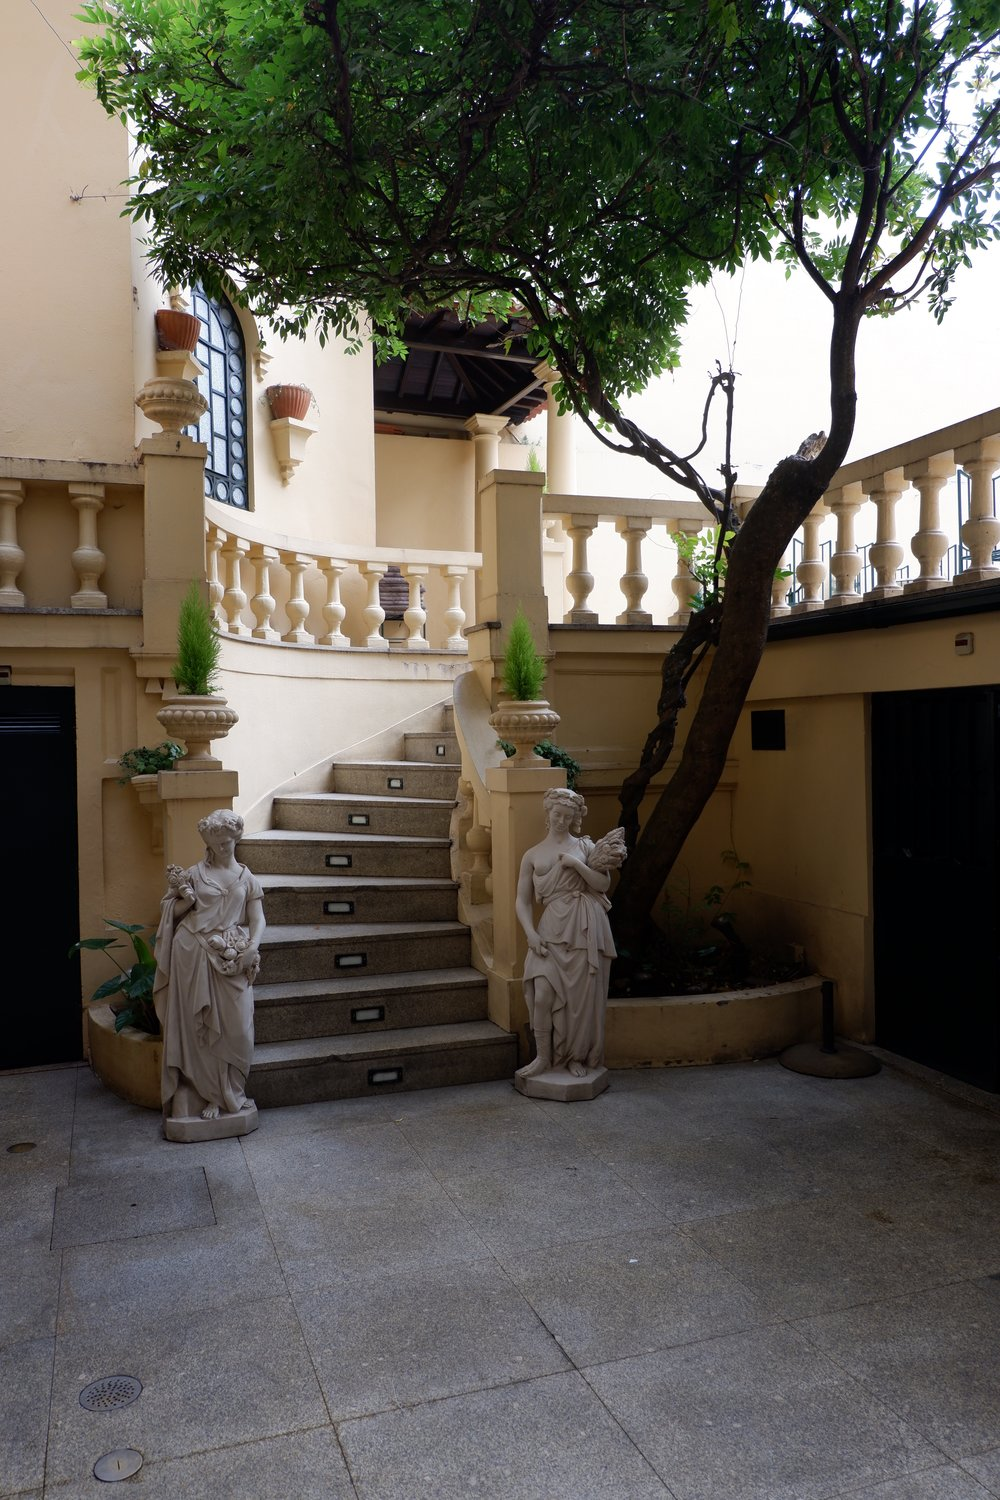 Terrace-with-trees-and-stairs-at-majestic-cafe